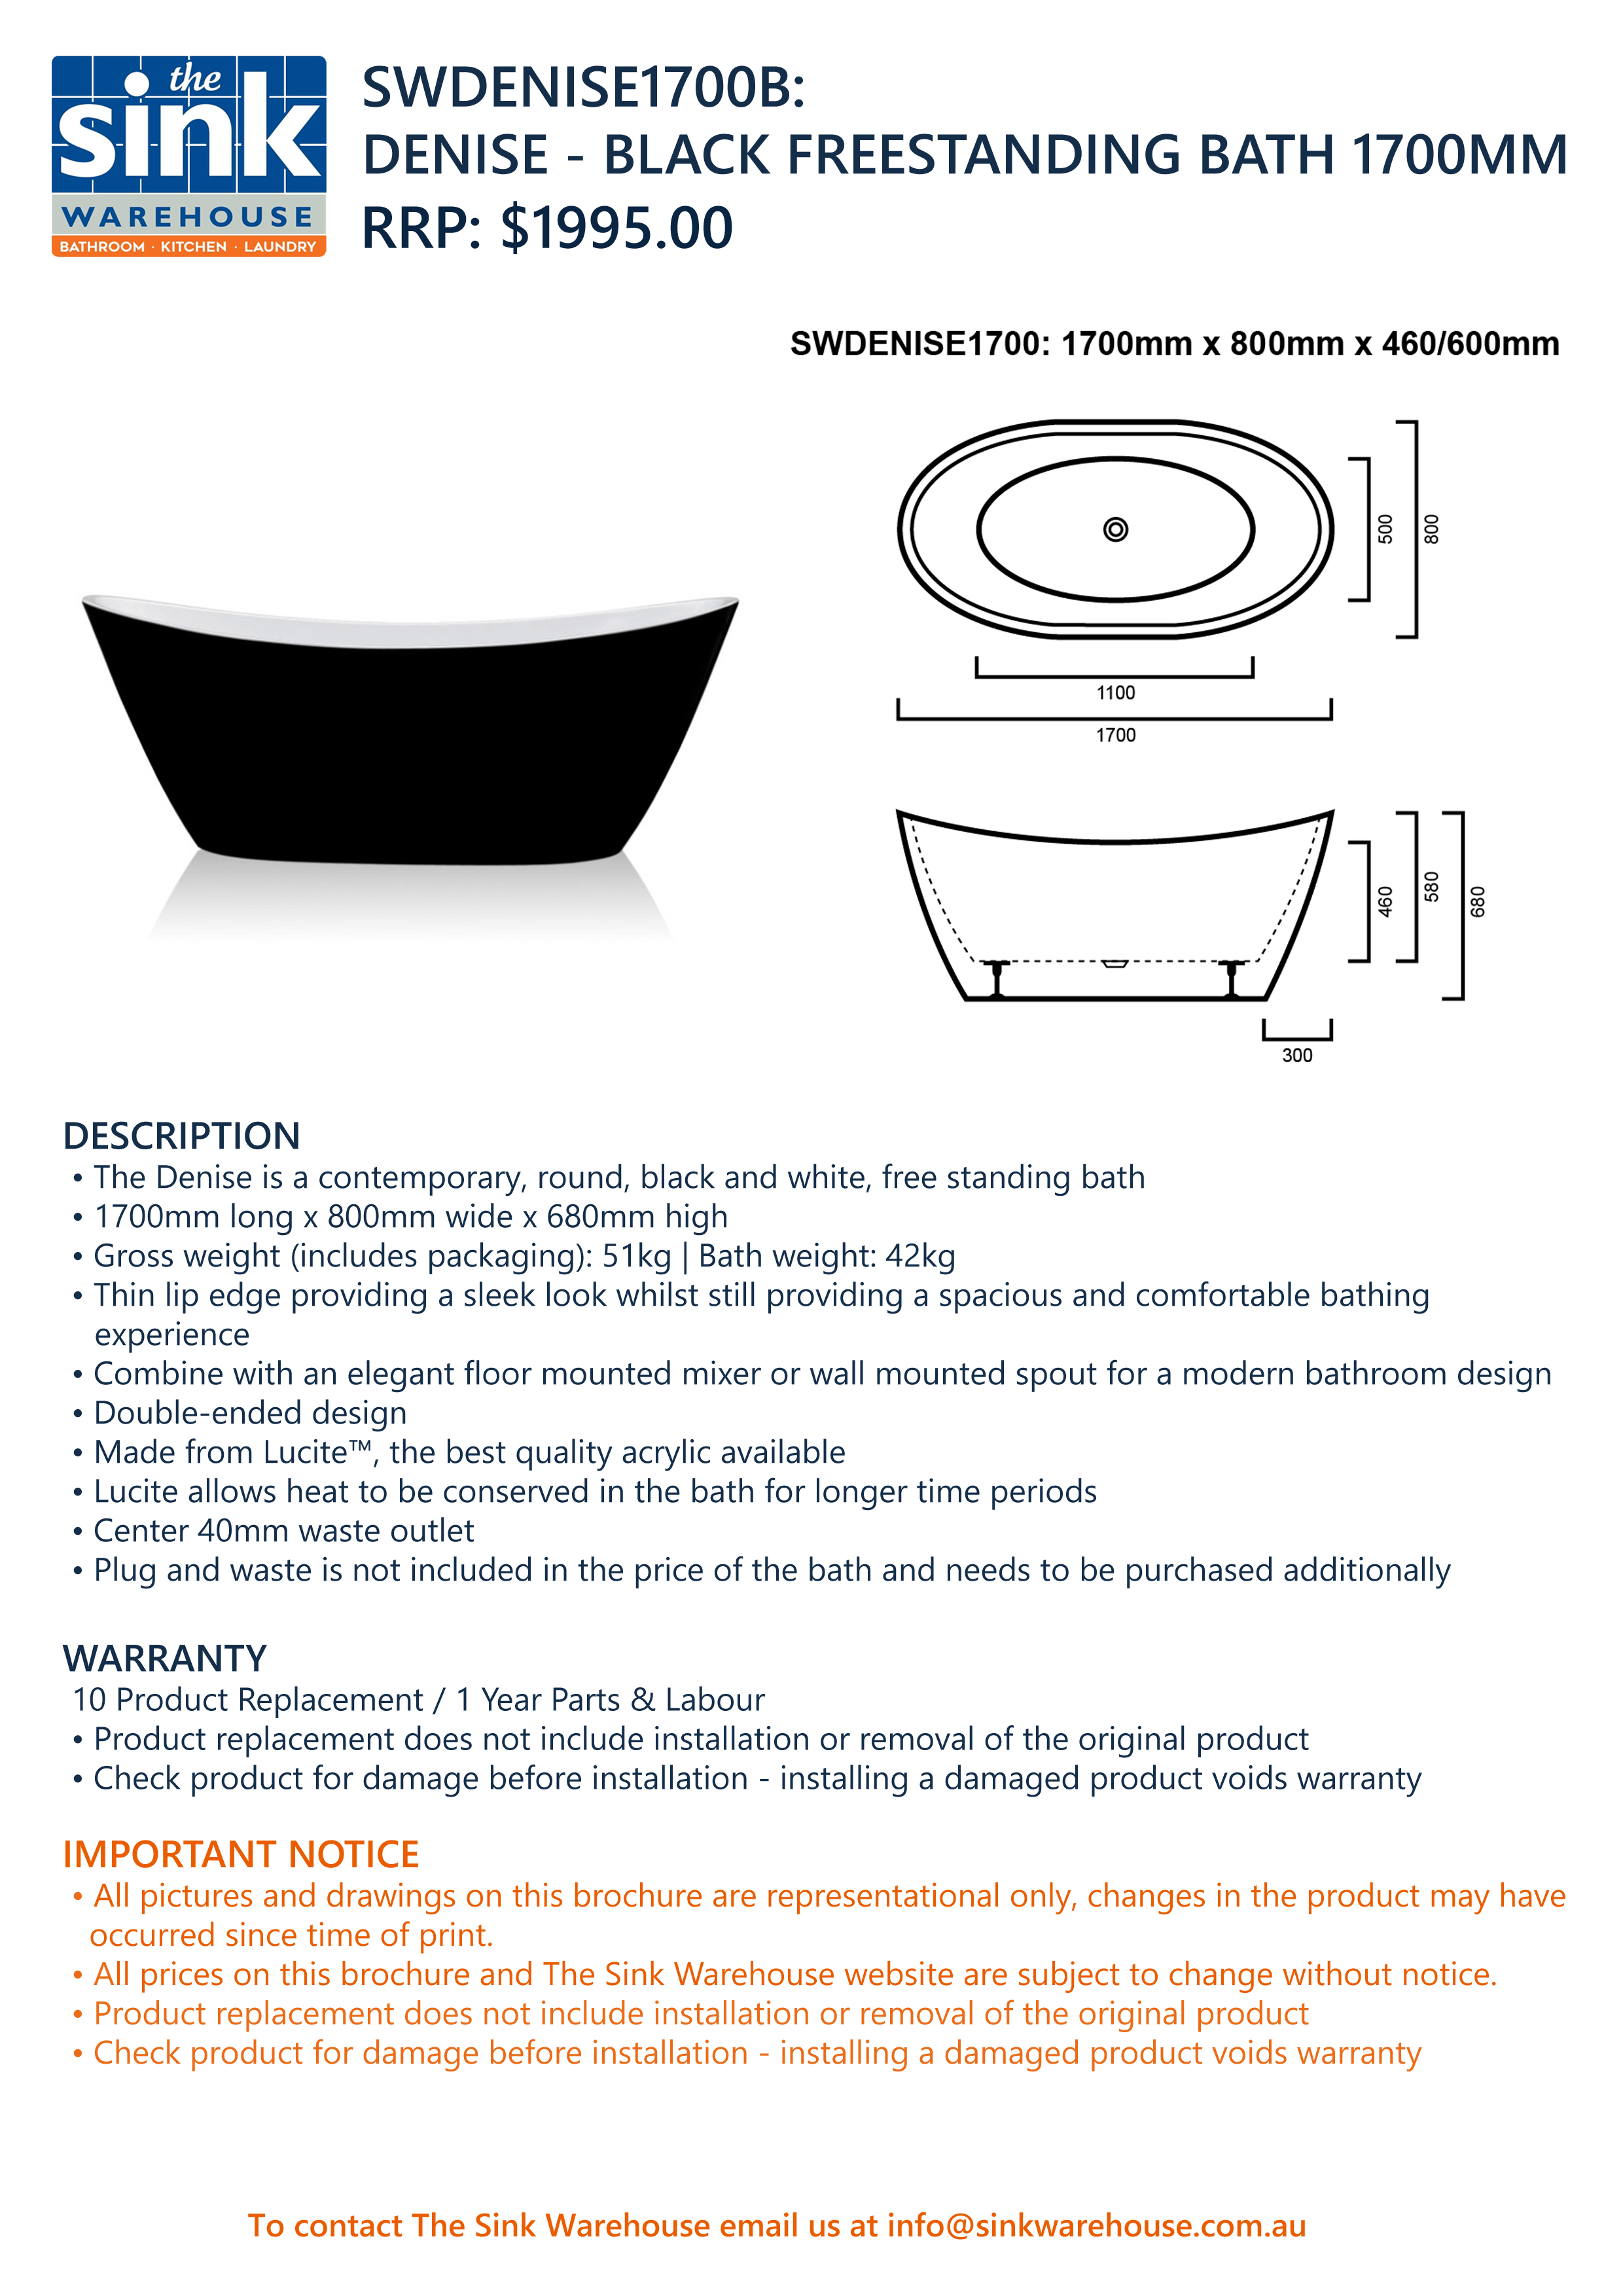 swdenise1700b-product-spec-sheet.png